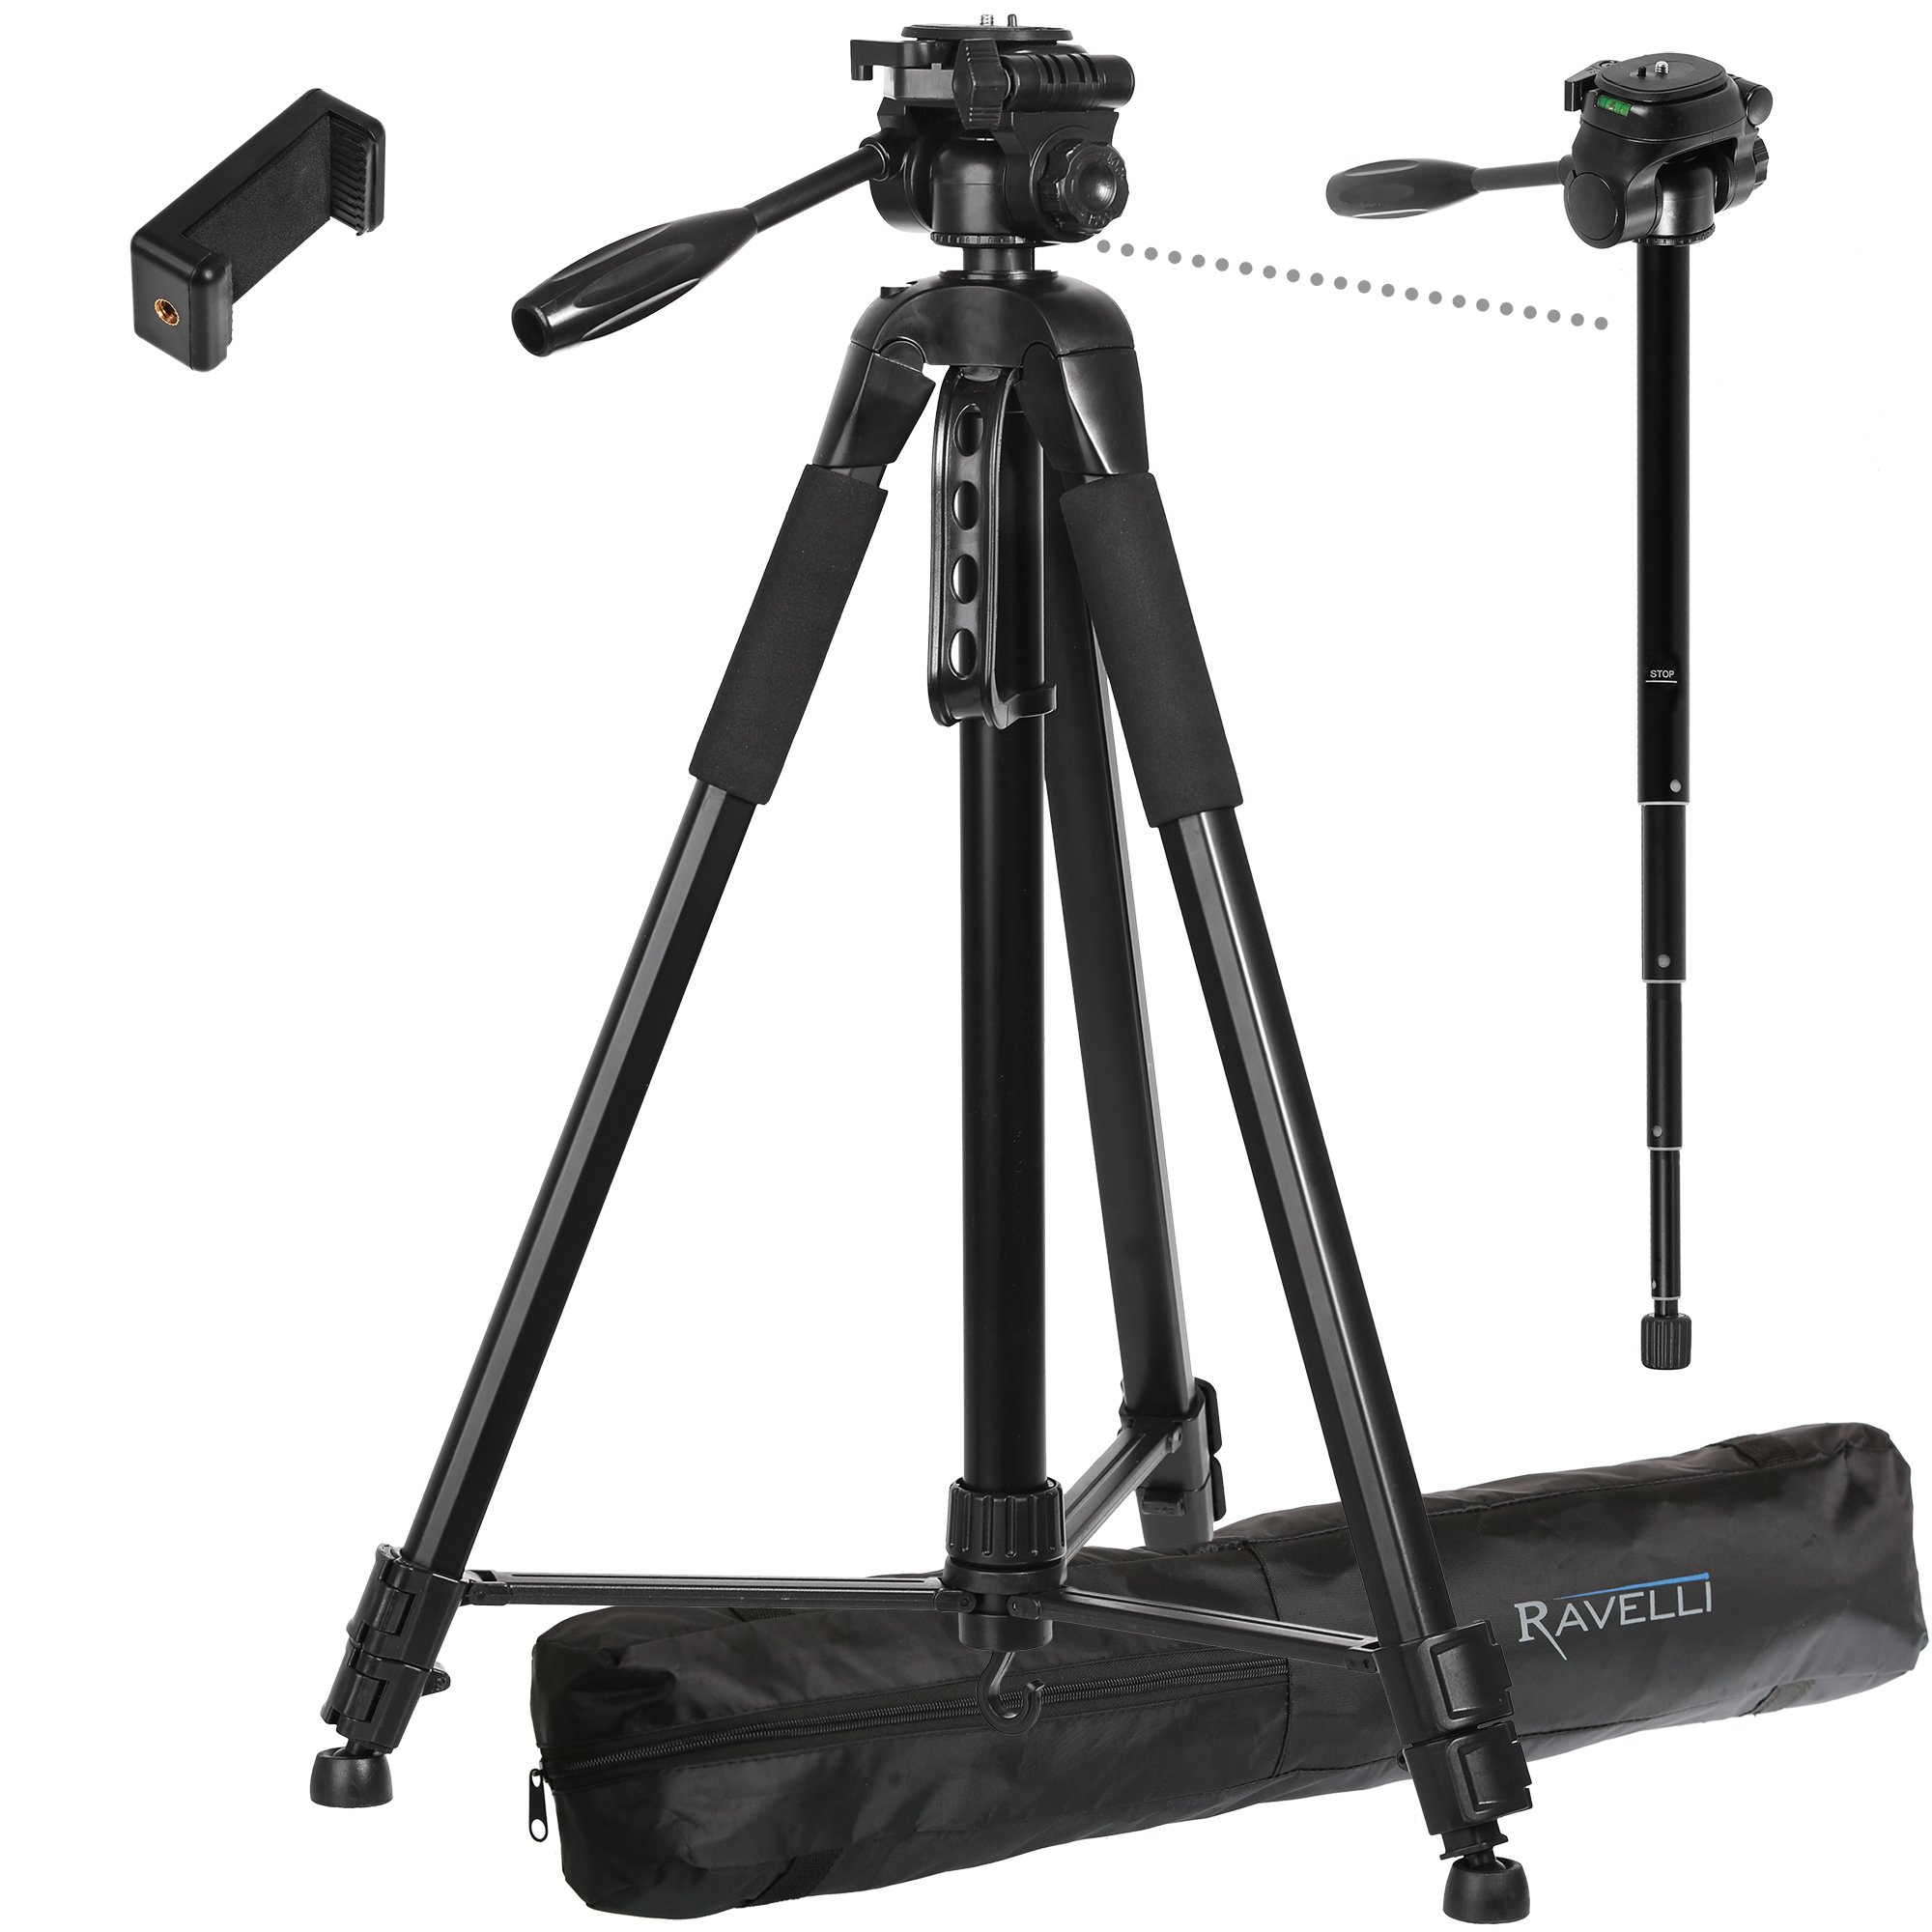 Ravelli APLT6M 72'' Light Weight Aluminum Tripod with Monopod Includes Carry Bag and Universal Smartphone Mount